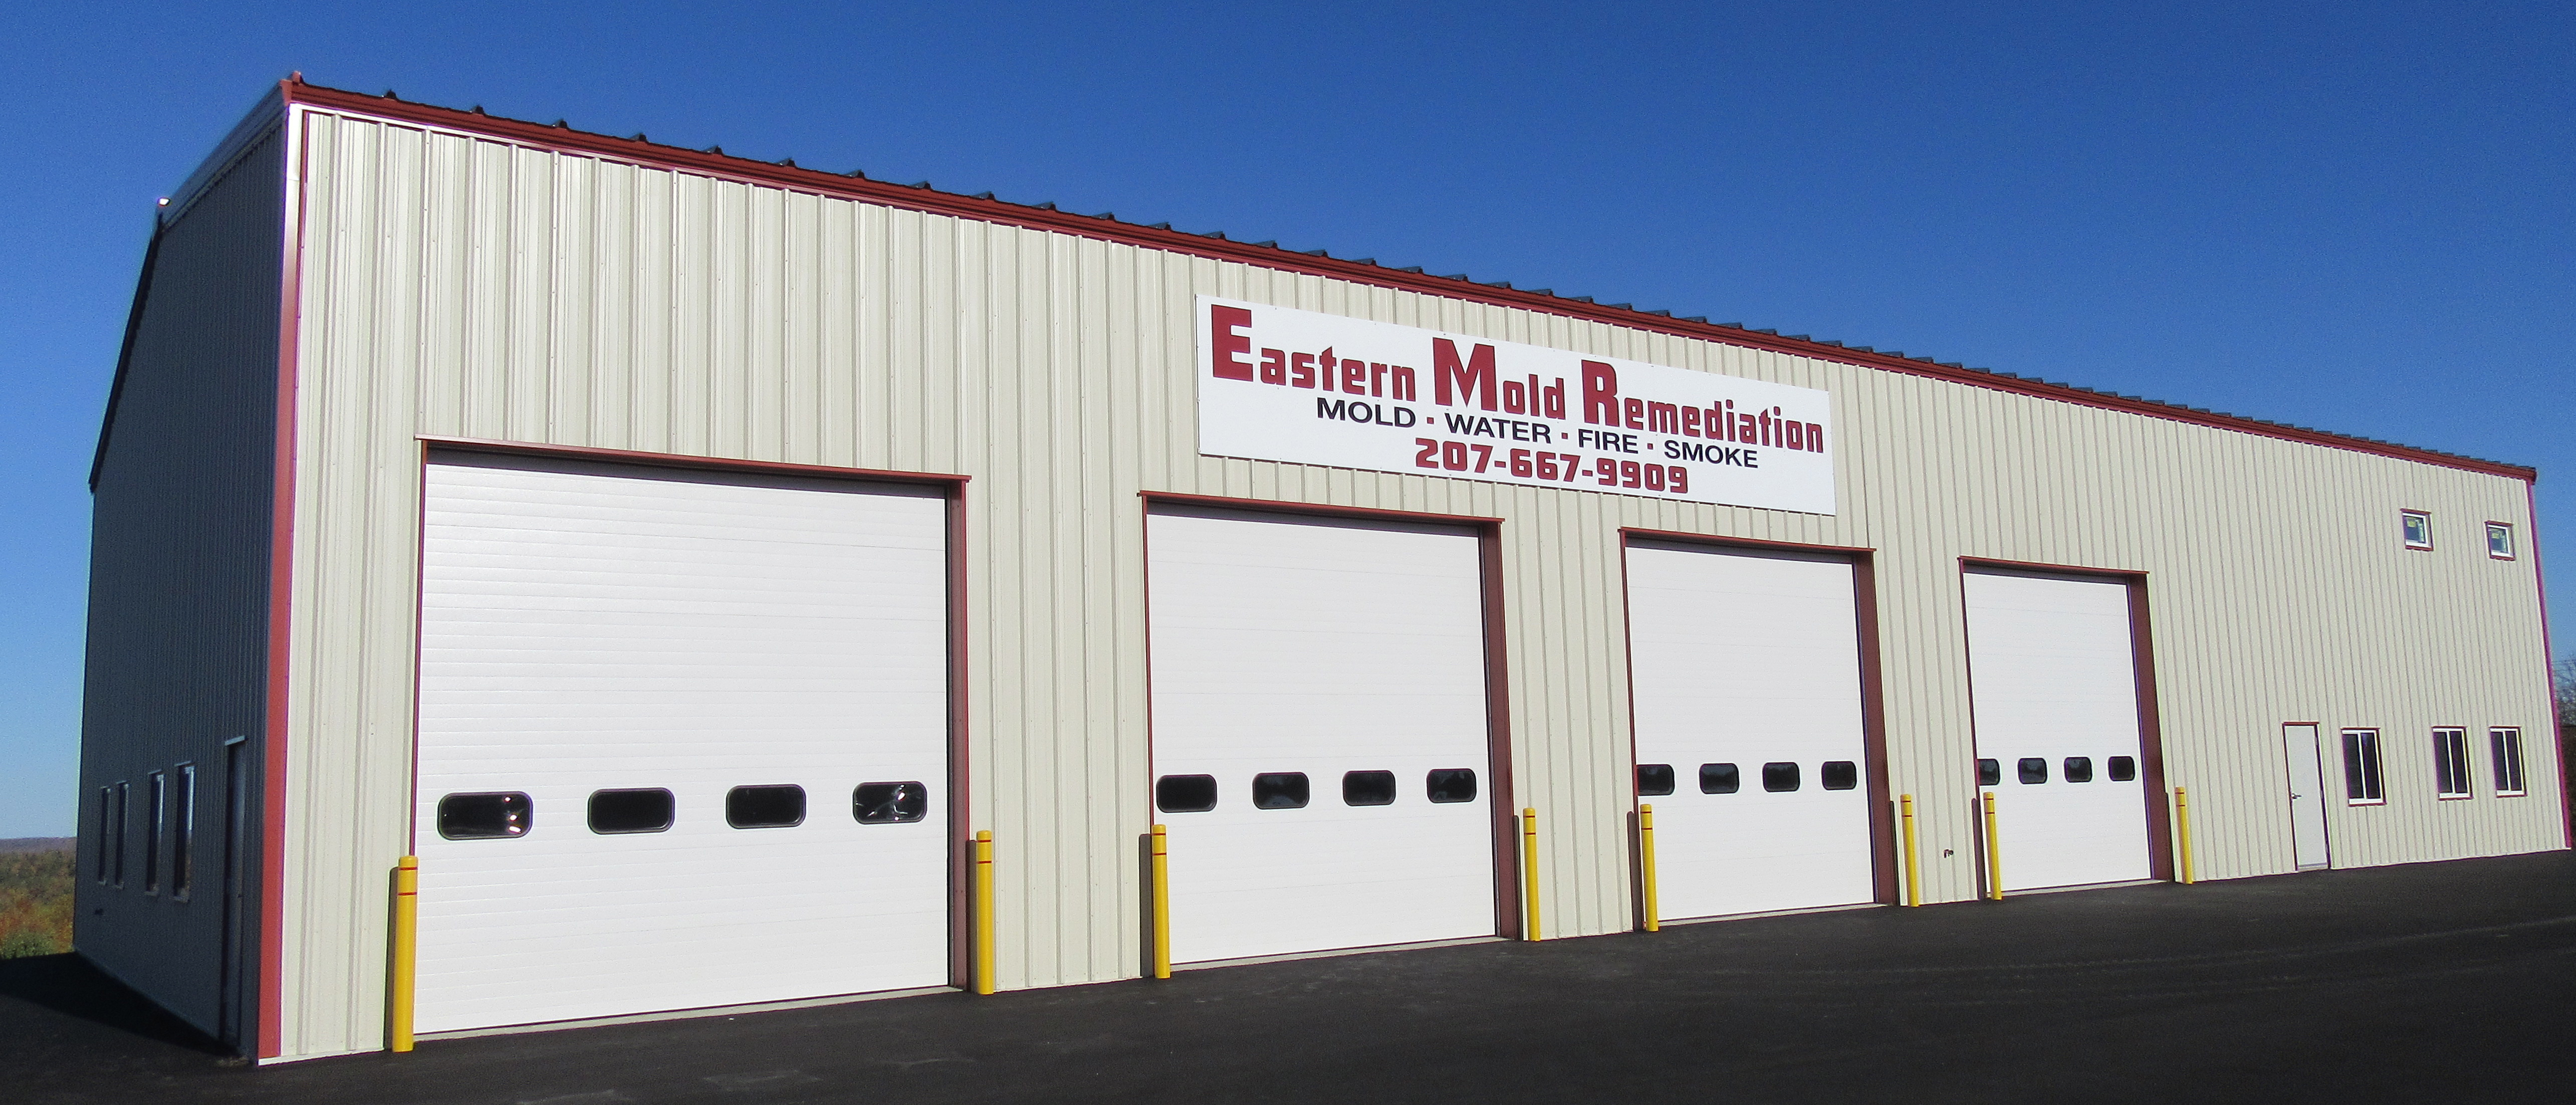 Eastern Mold Remediation (207) 667-9909 | Maine's premier